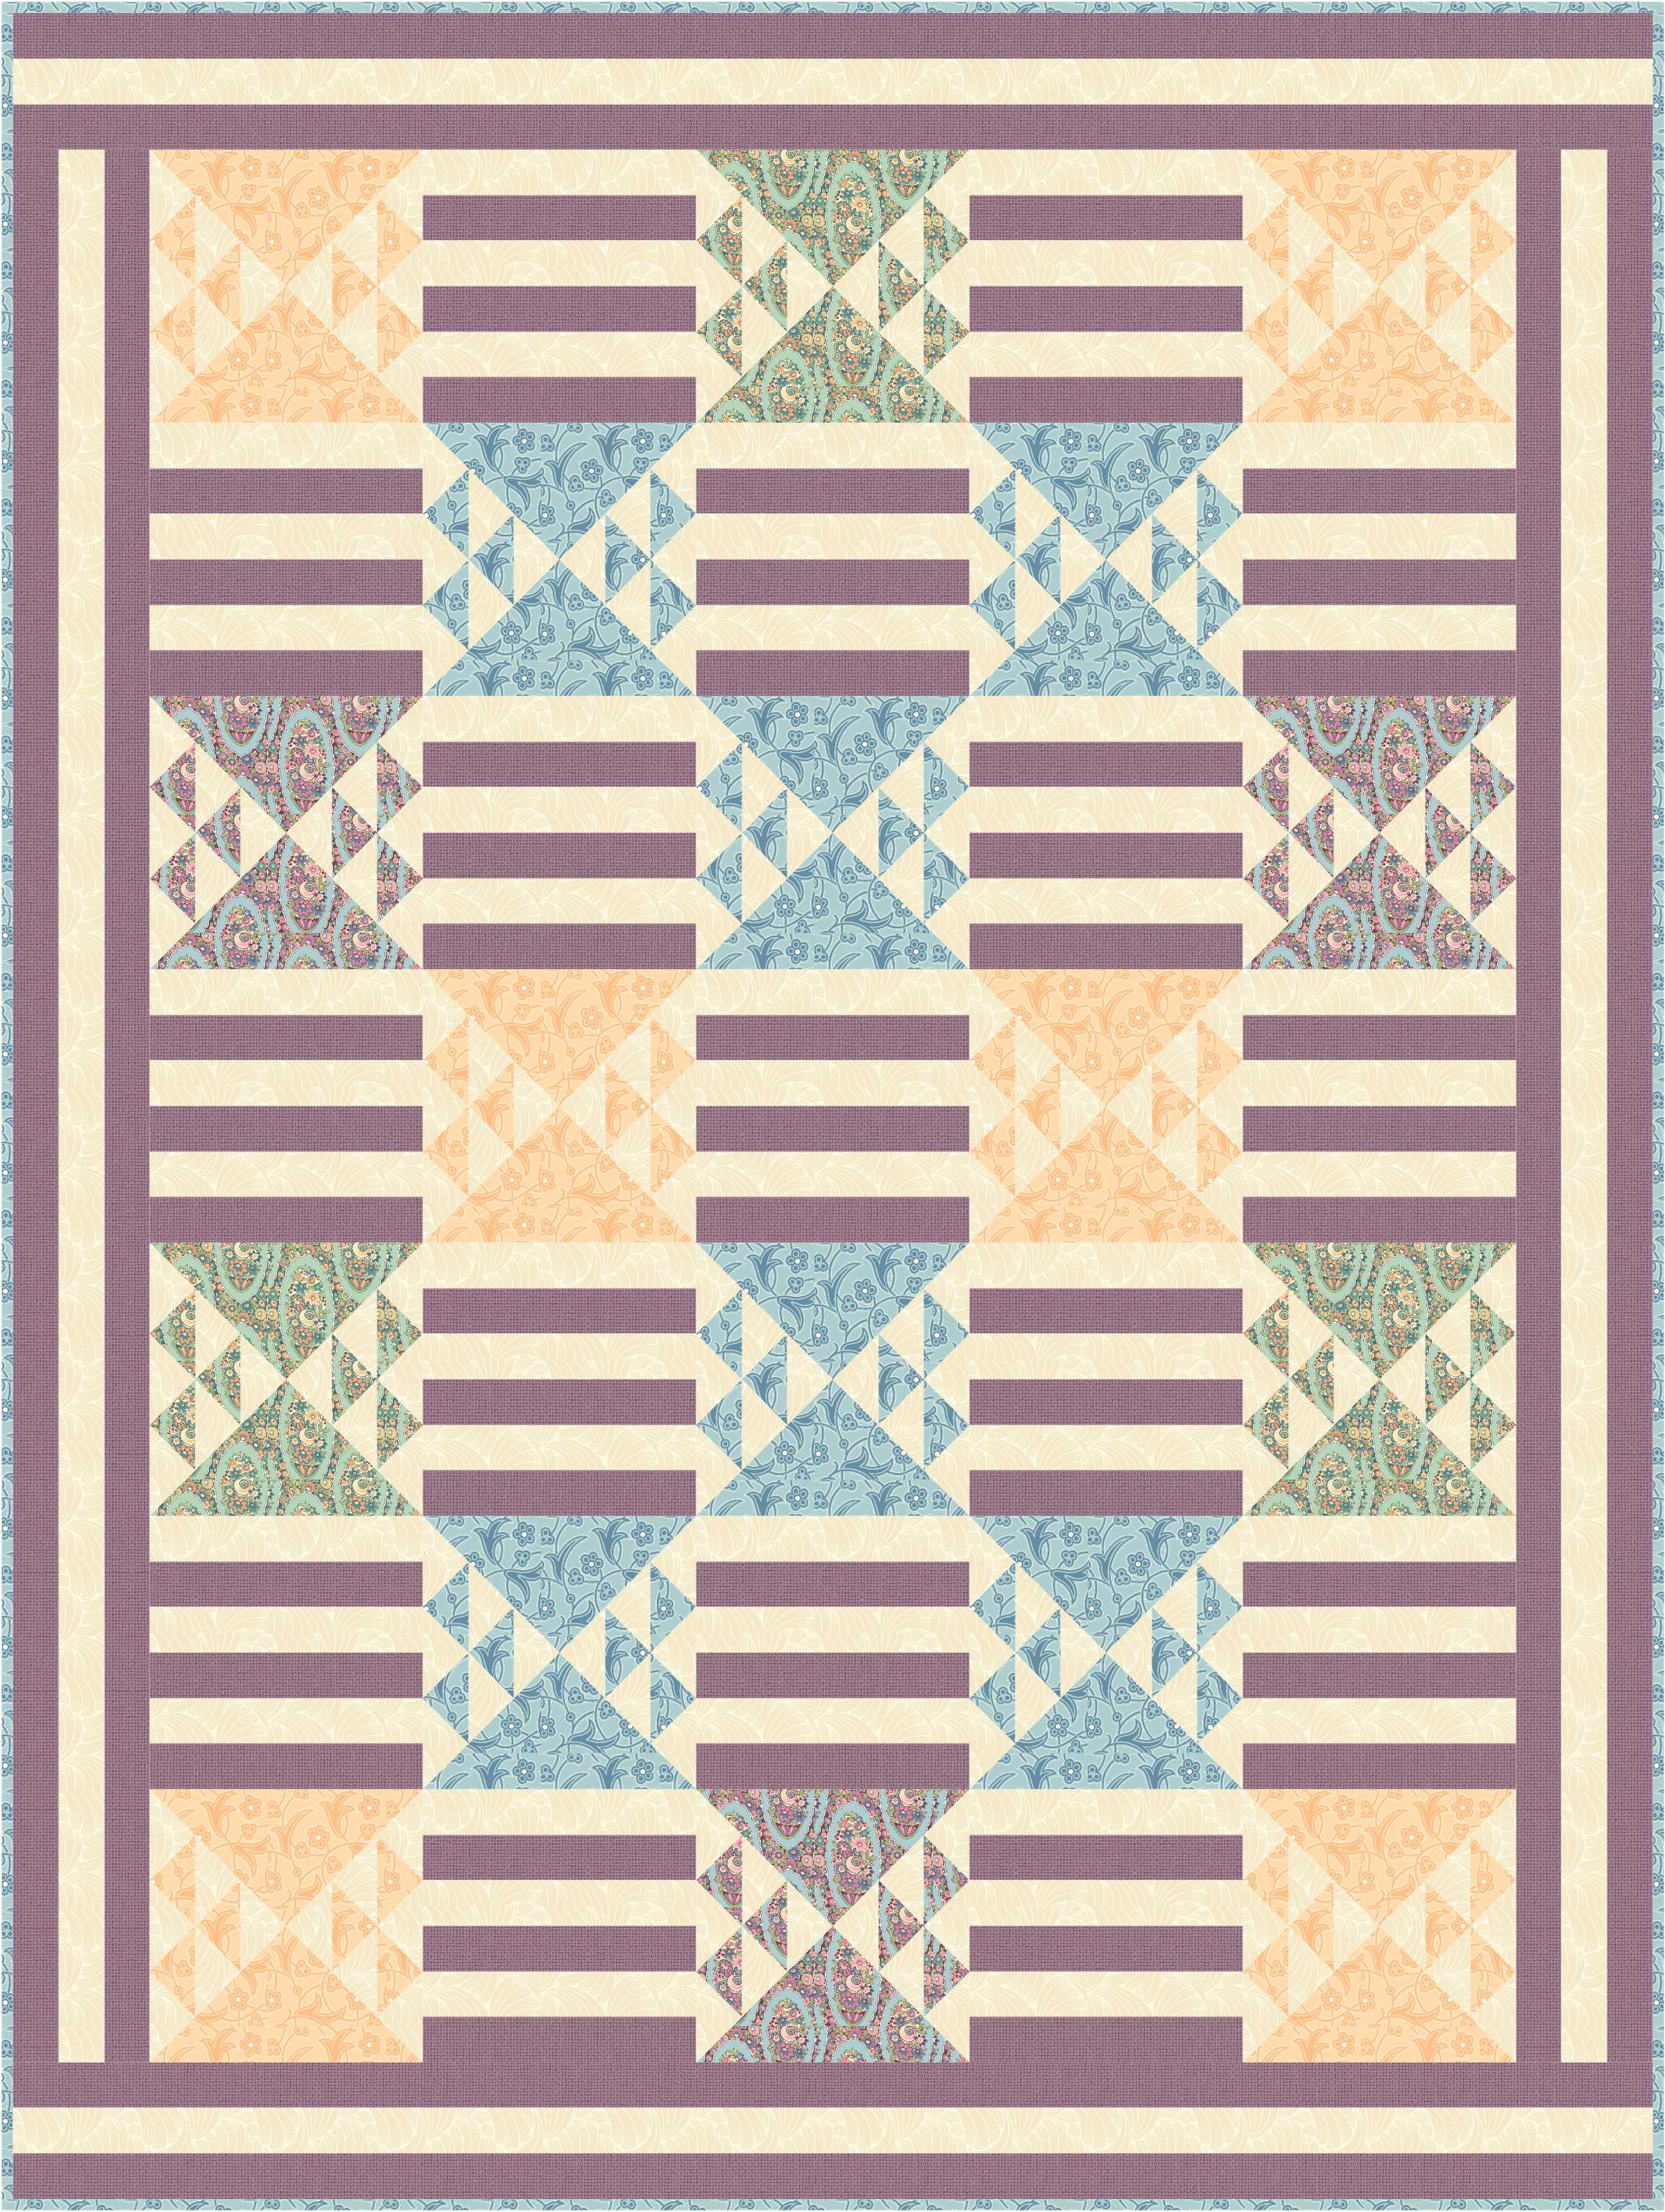 Bar Quilt - Purple & Peach 2 with cream print